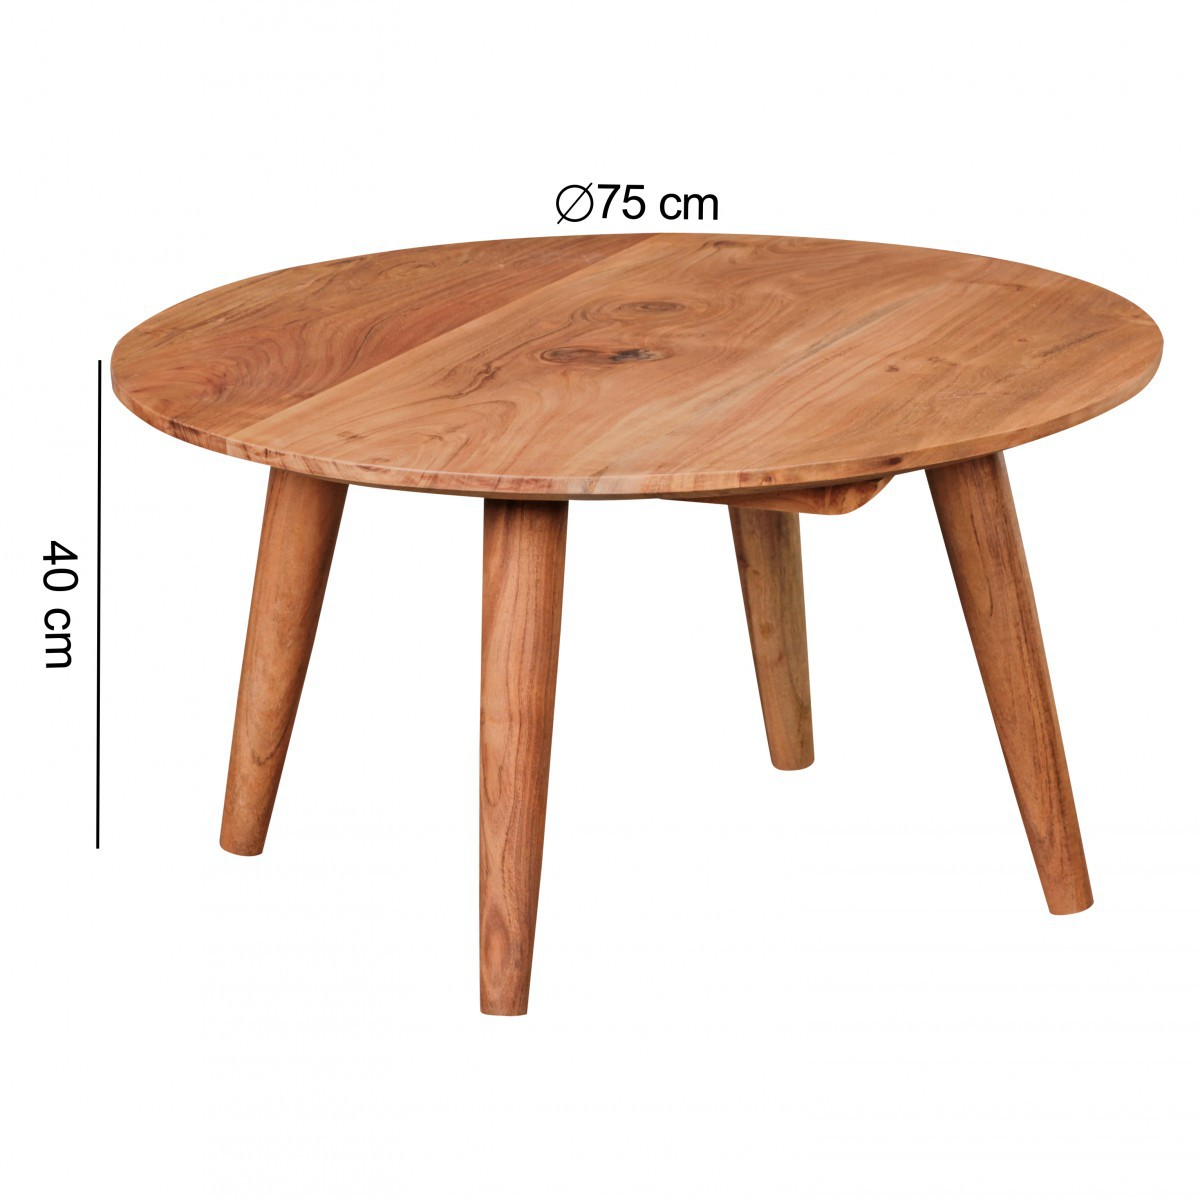 Finebuy table basse en bois massif acacia table basse ronde 75 x 40 cm ferme - Table basse modulable bois ...